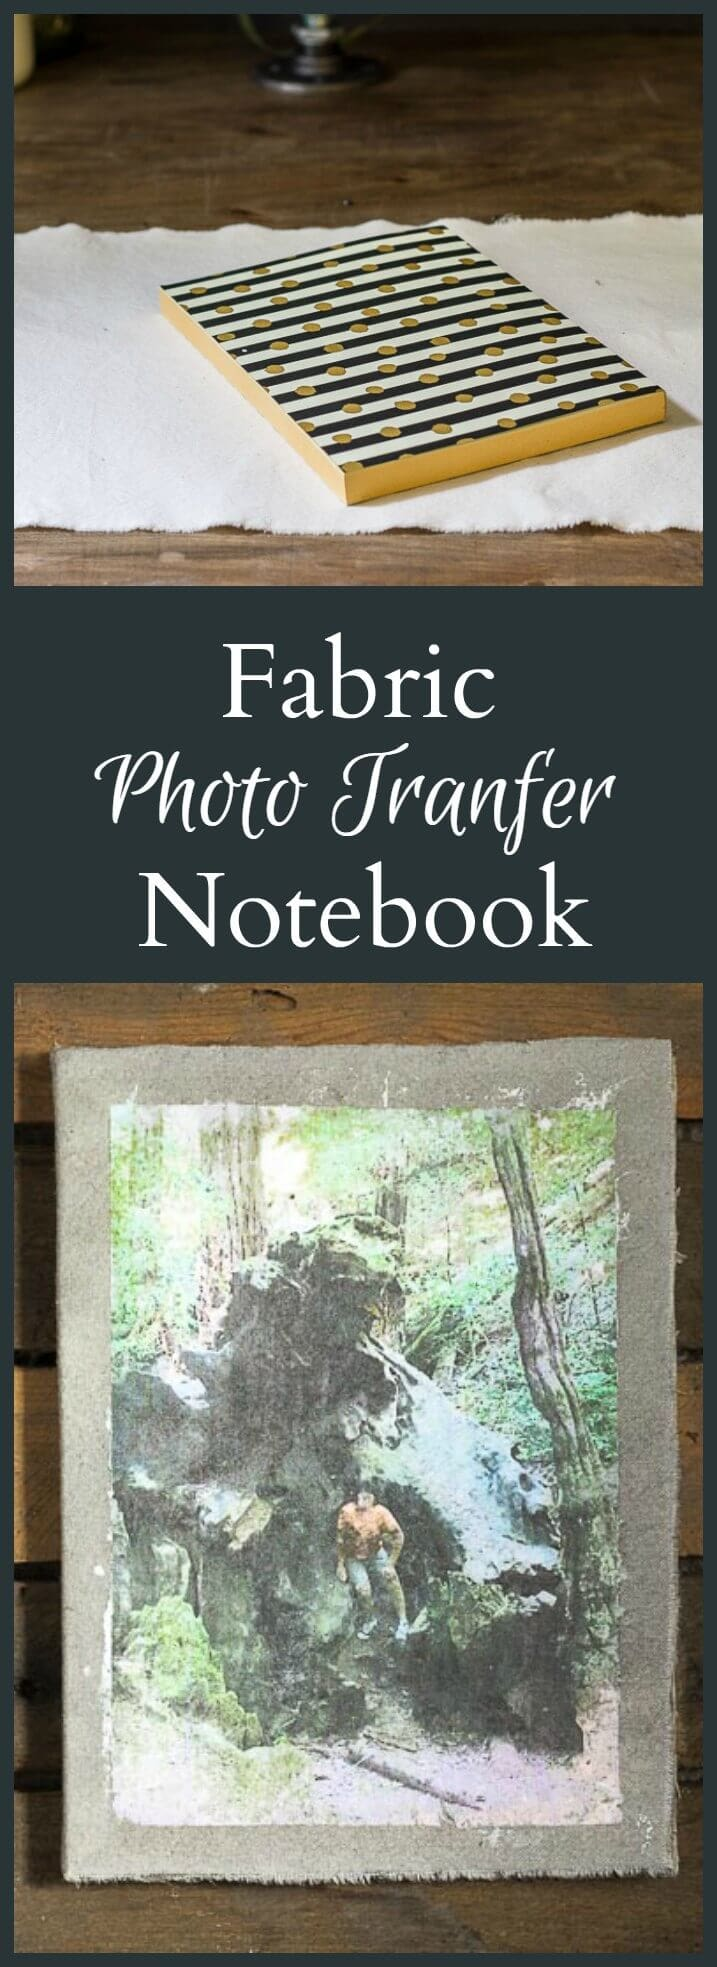 Learn how to make a customized fabric photo transfer notebook to give to someone special using their own personal images.